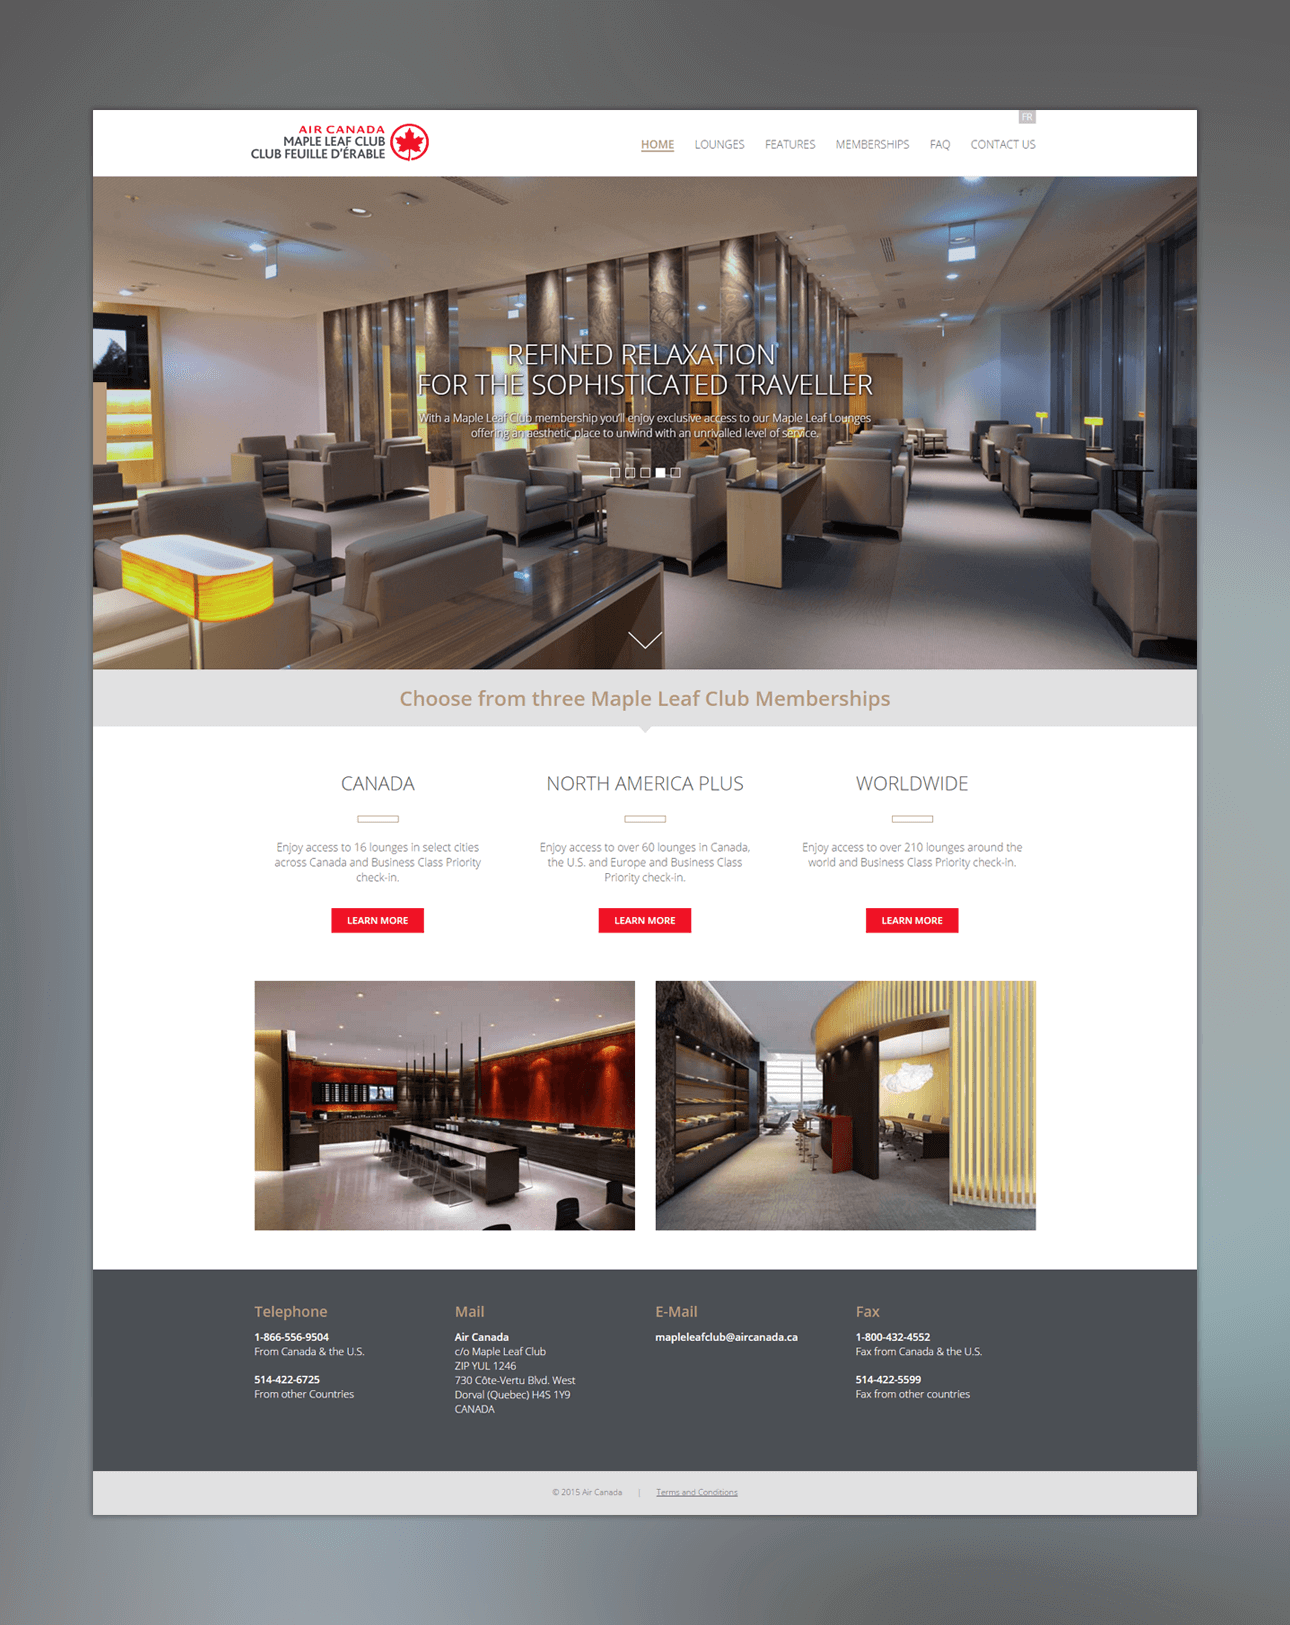 Screen captures of Air Canada's Maple Leaf Club website.